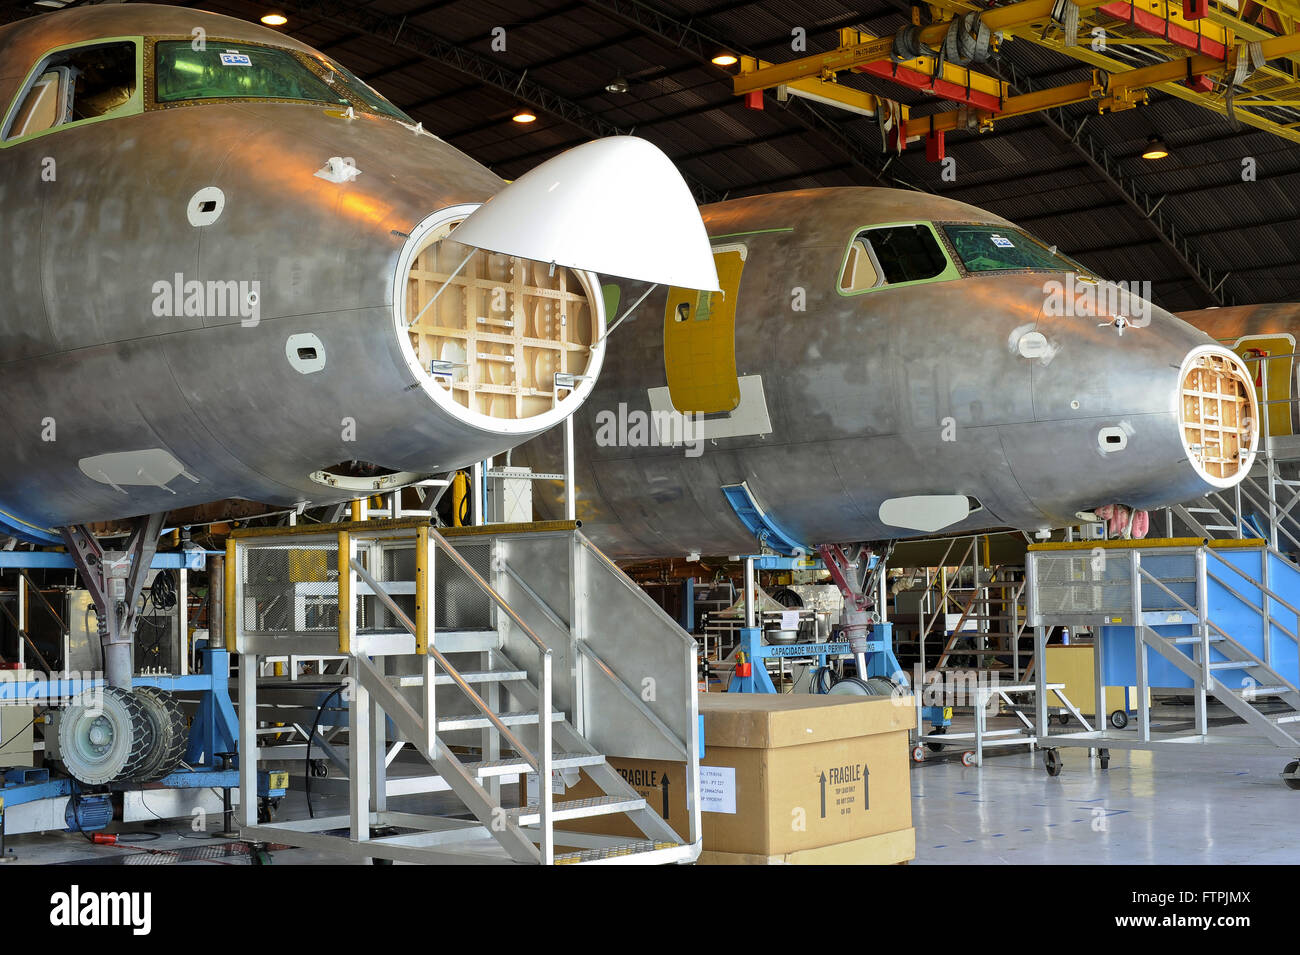 Assembly line for the EMB-170 and EMB-190 from EMBRAER - Stock Image